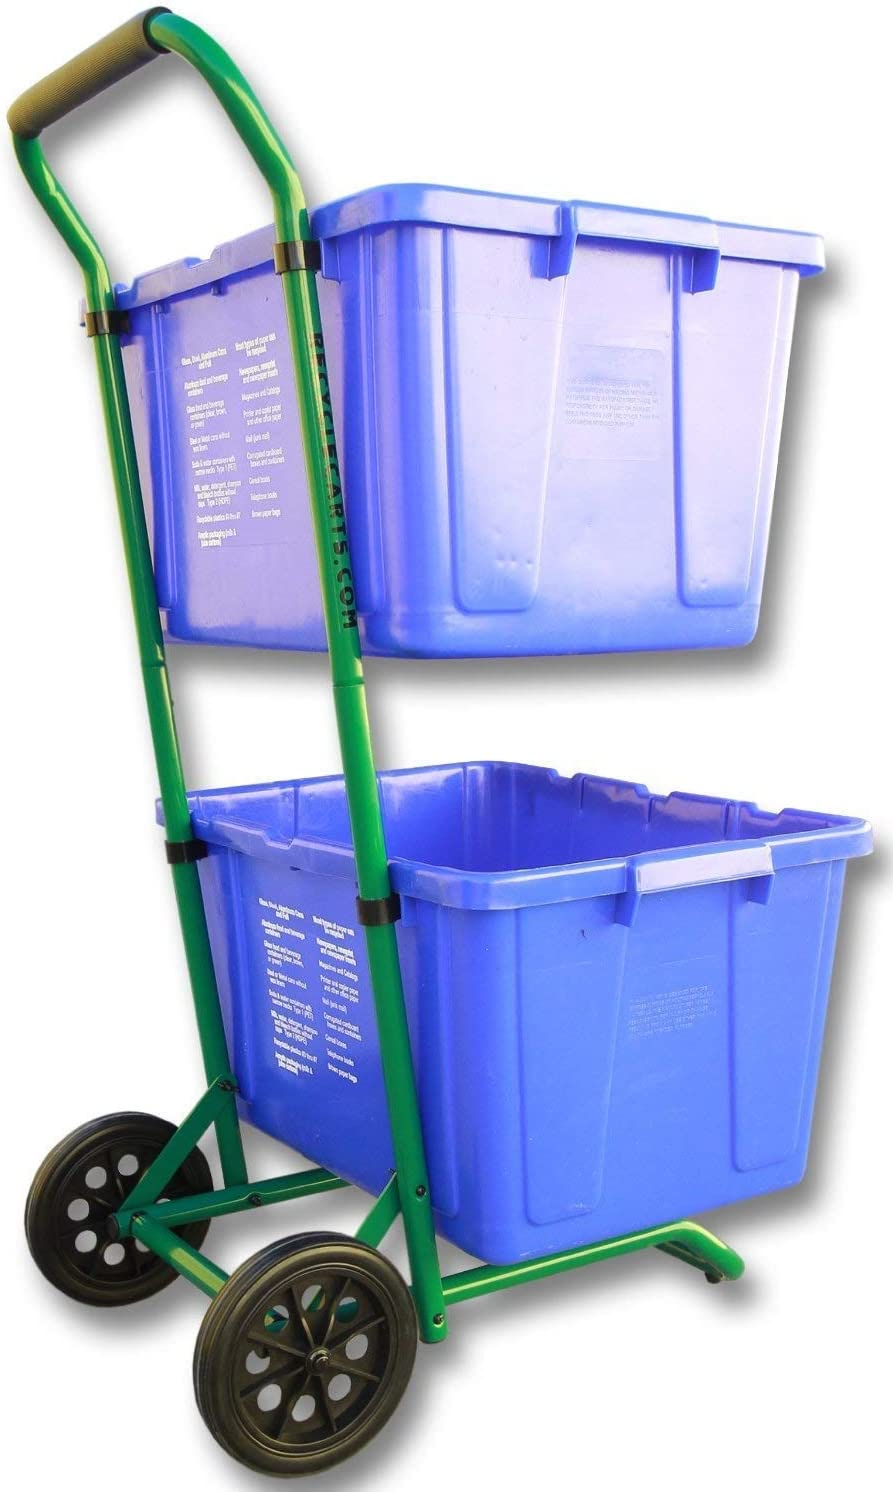 Recycle Carts for Recycle Bins Robust for Simple Recycle Bin Moving | Recycle Caddy (Twin Pack)